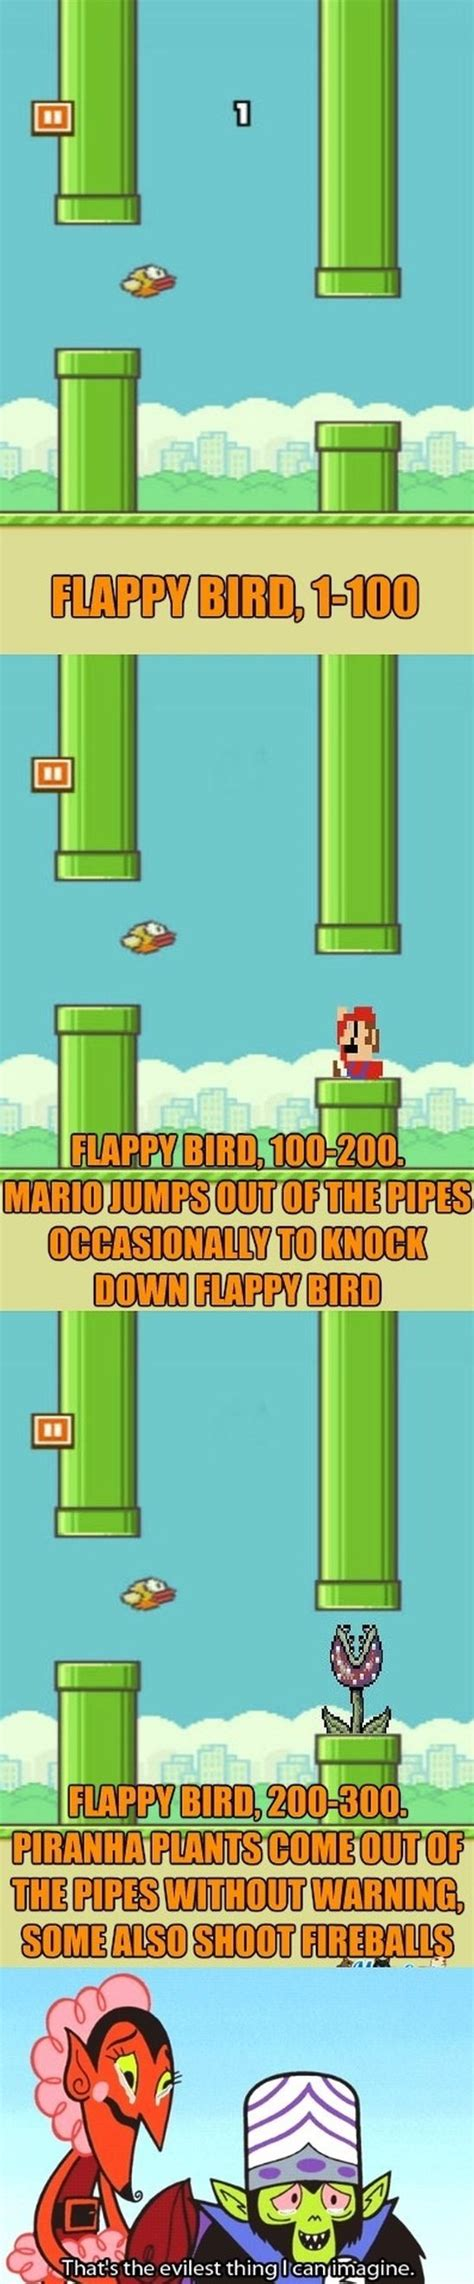 Flappy Bird Meme - funny flappy bird pictures